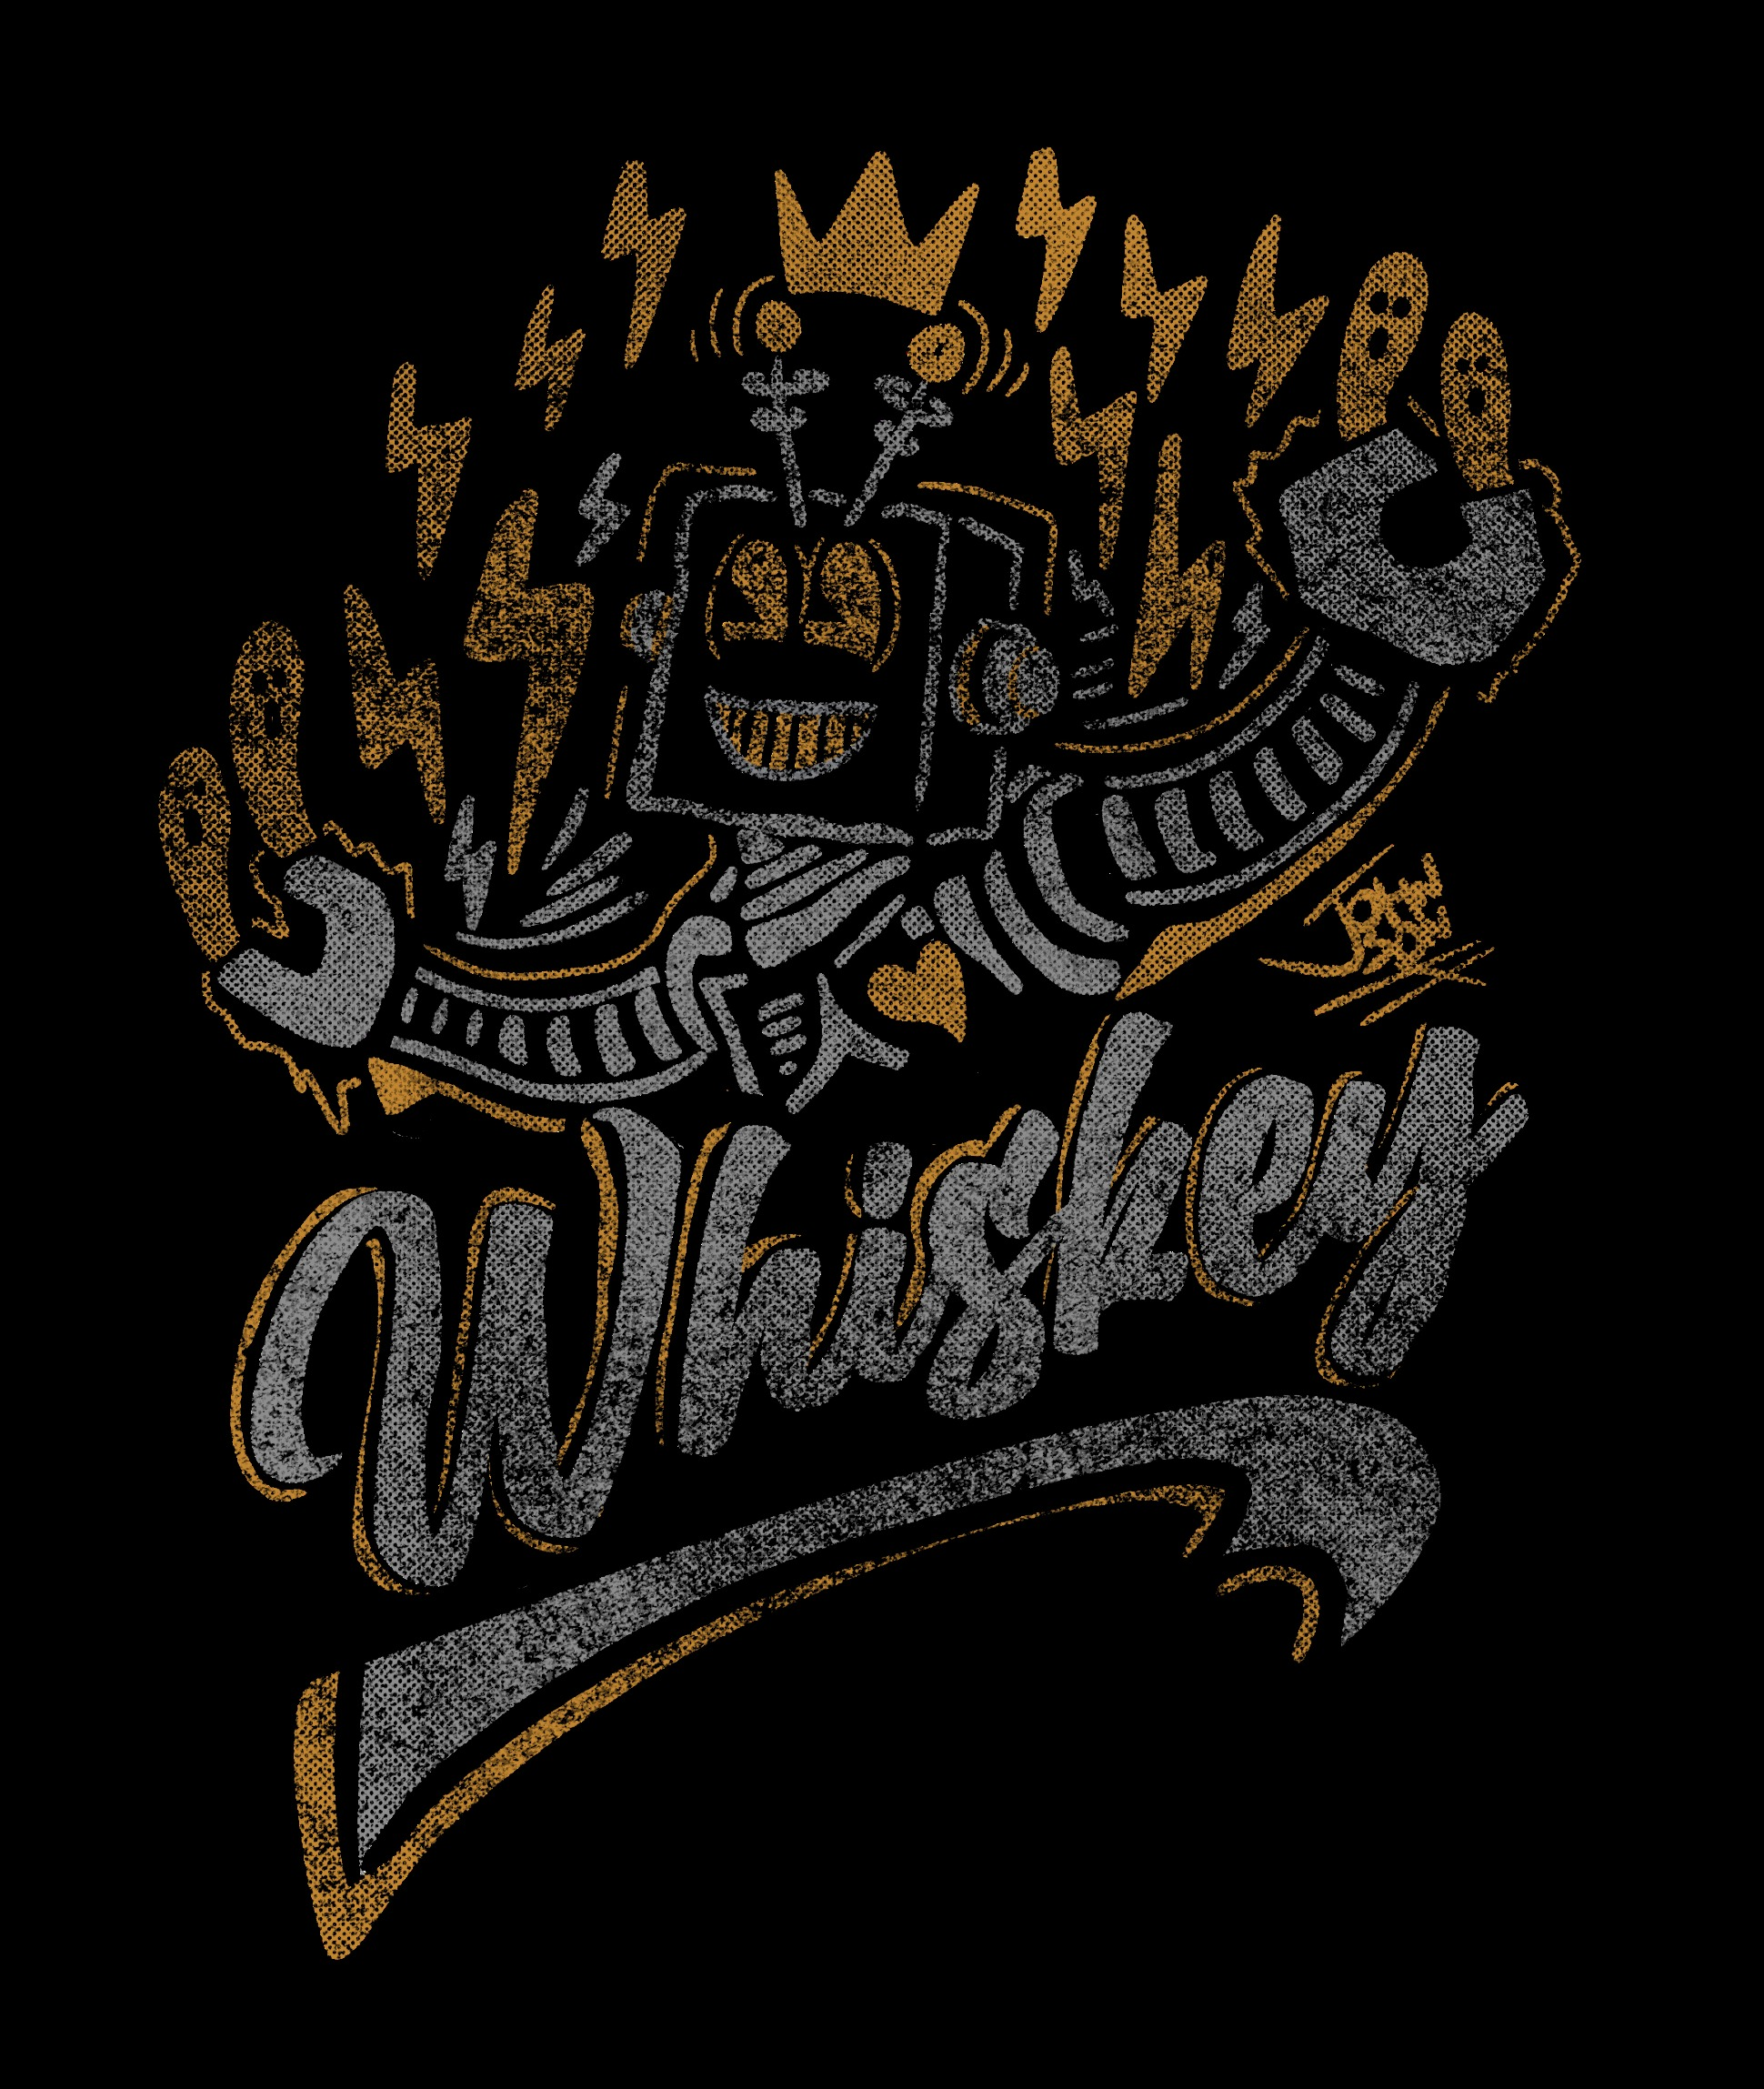 Whiskey Robot